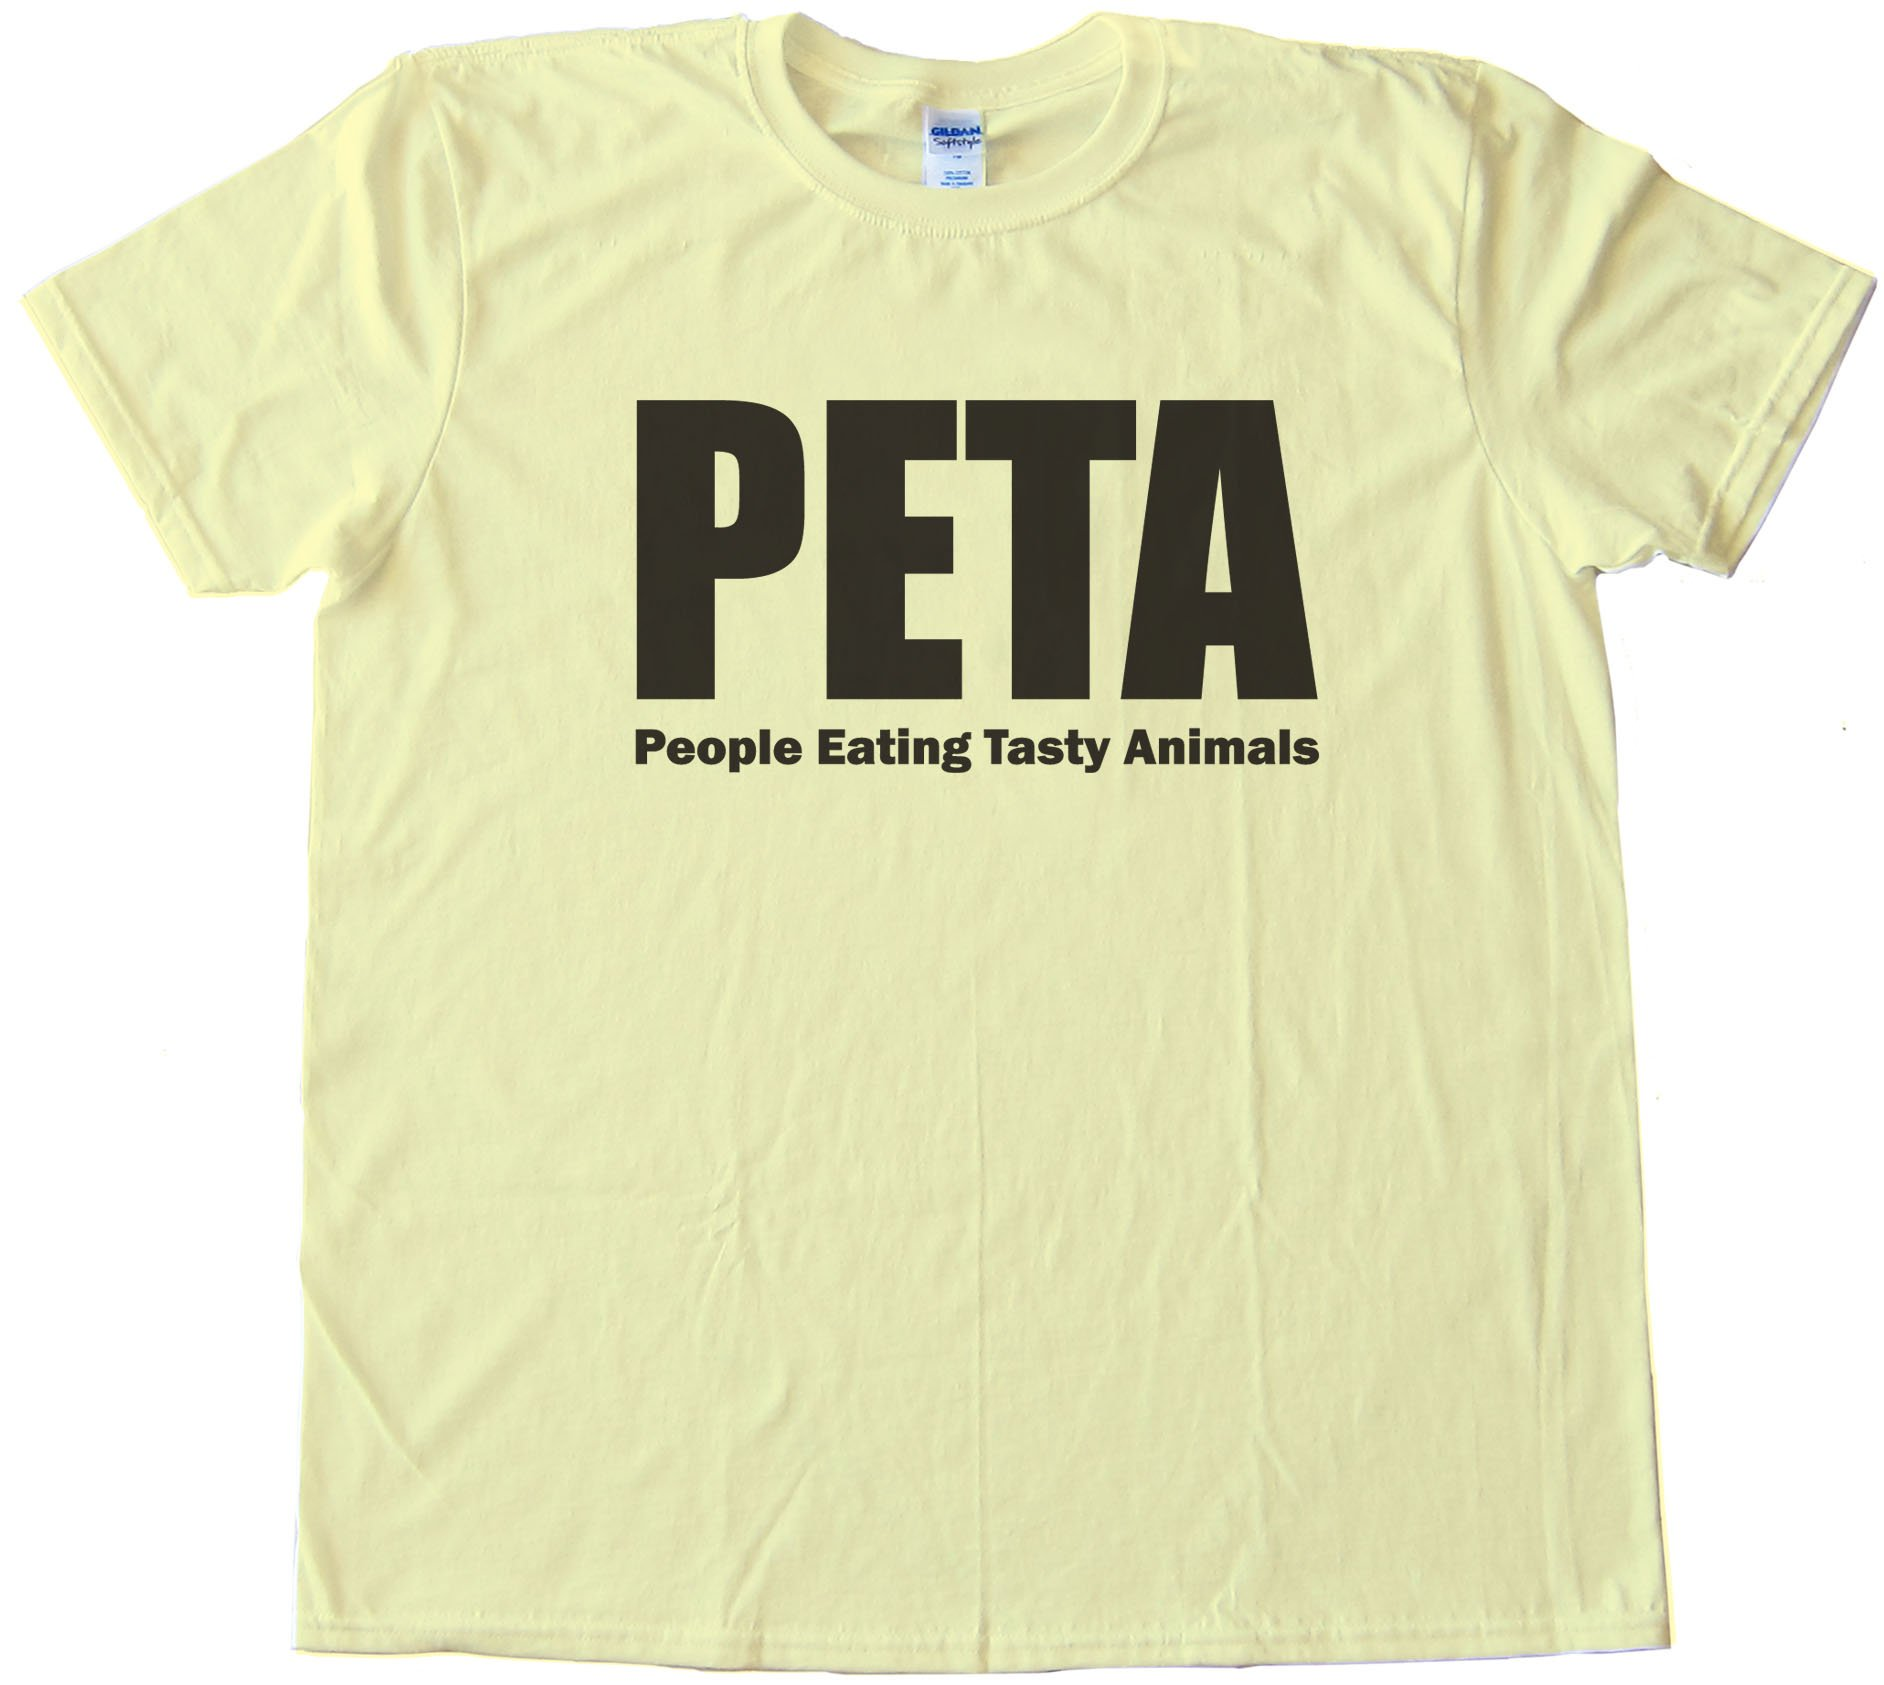 Hilarious Tee Shirts - The Latest Arrivals at 24tee.com